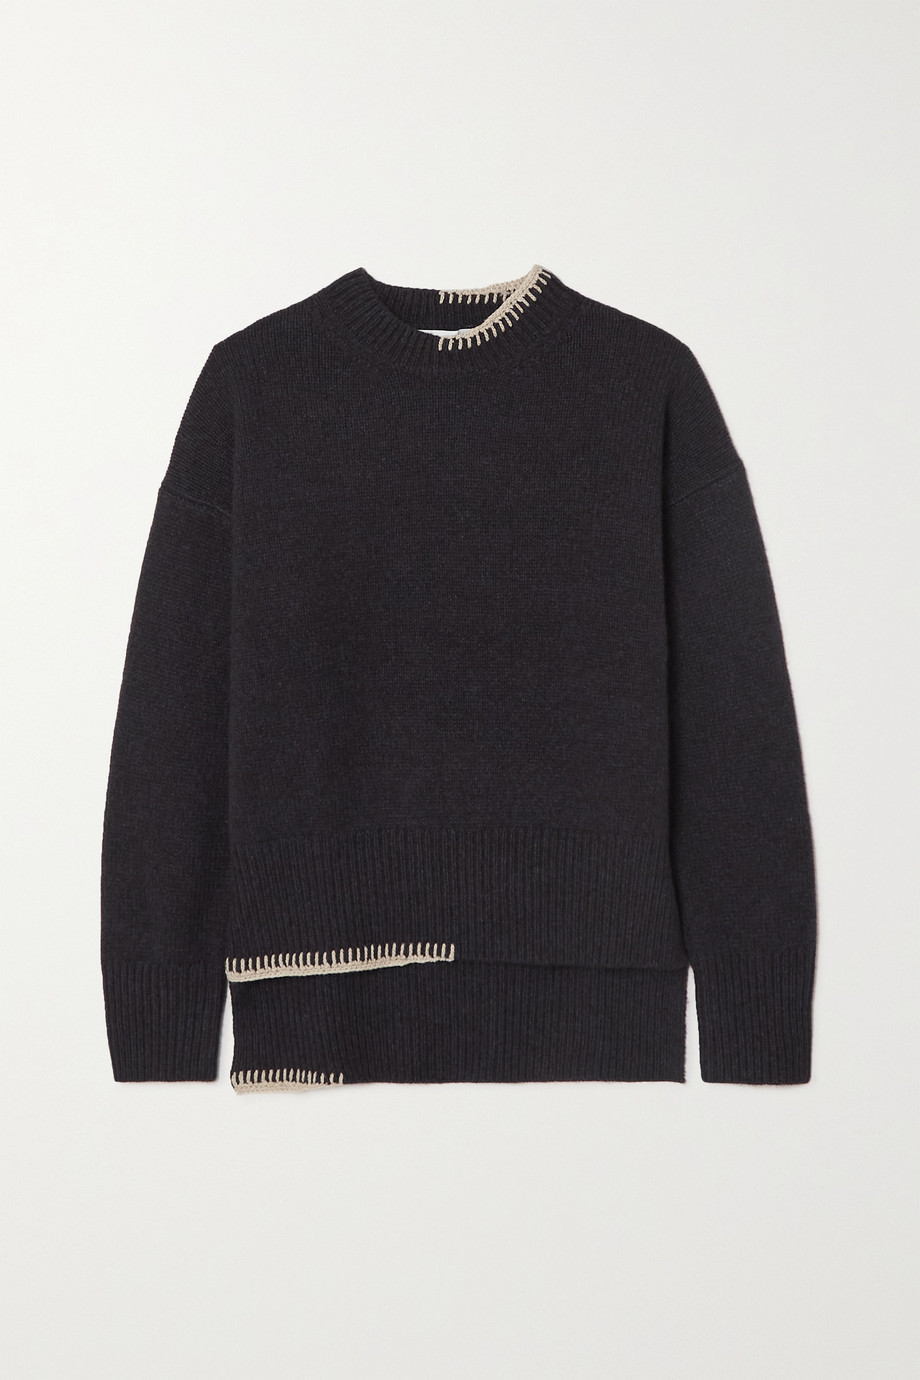 REJINA PYO + NET SUSTAIN Sloane embroidered recycled cashmere and wool-blend sweater